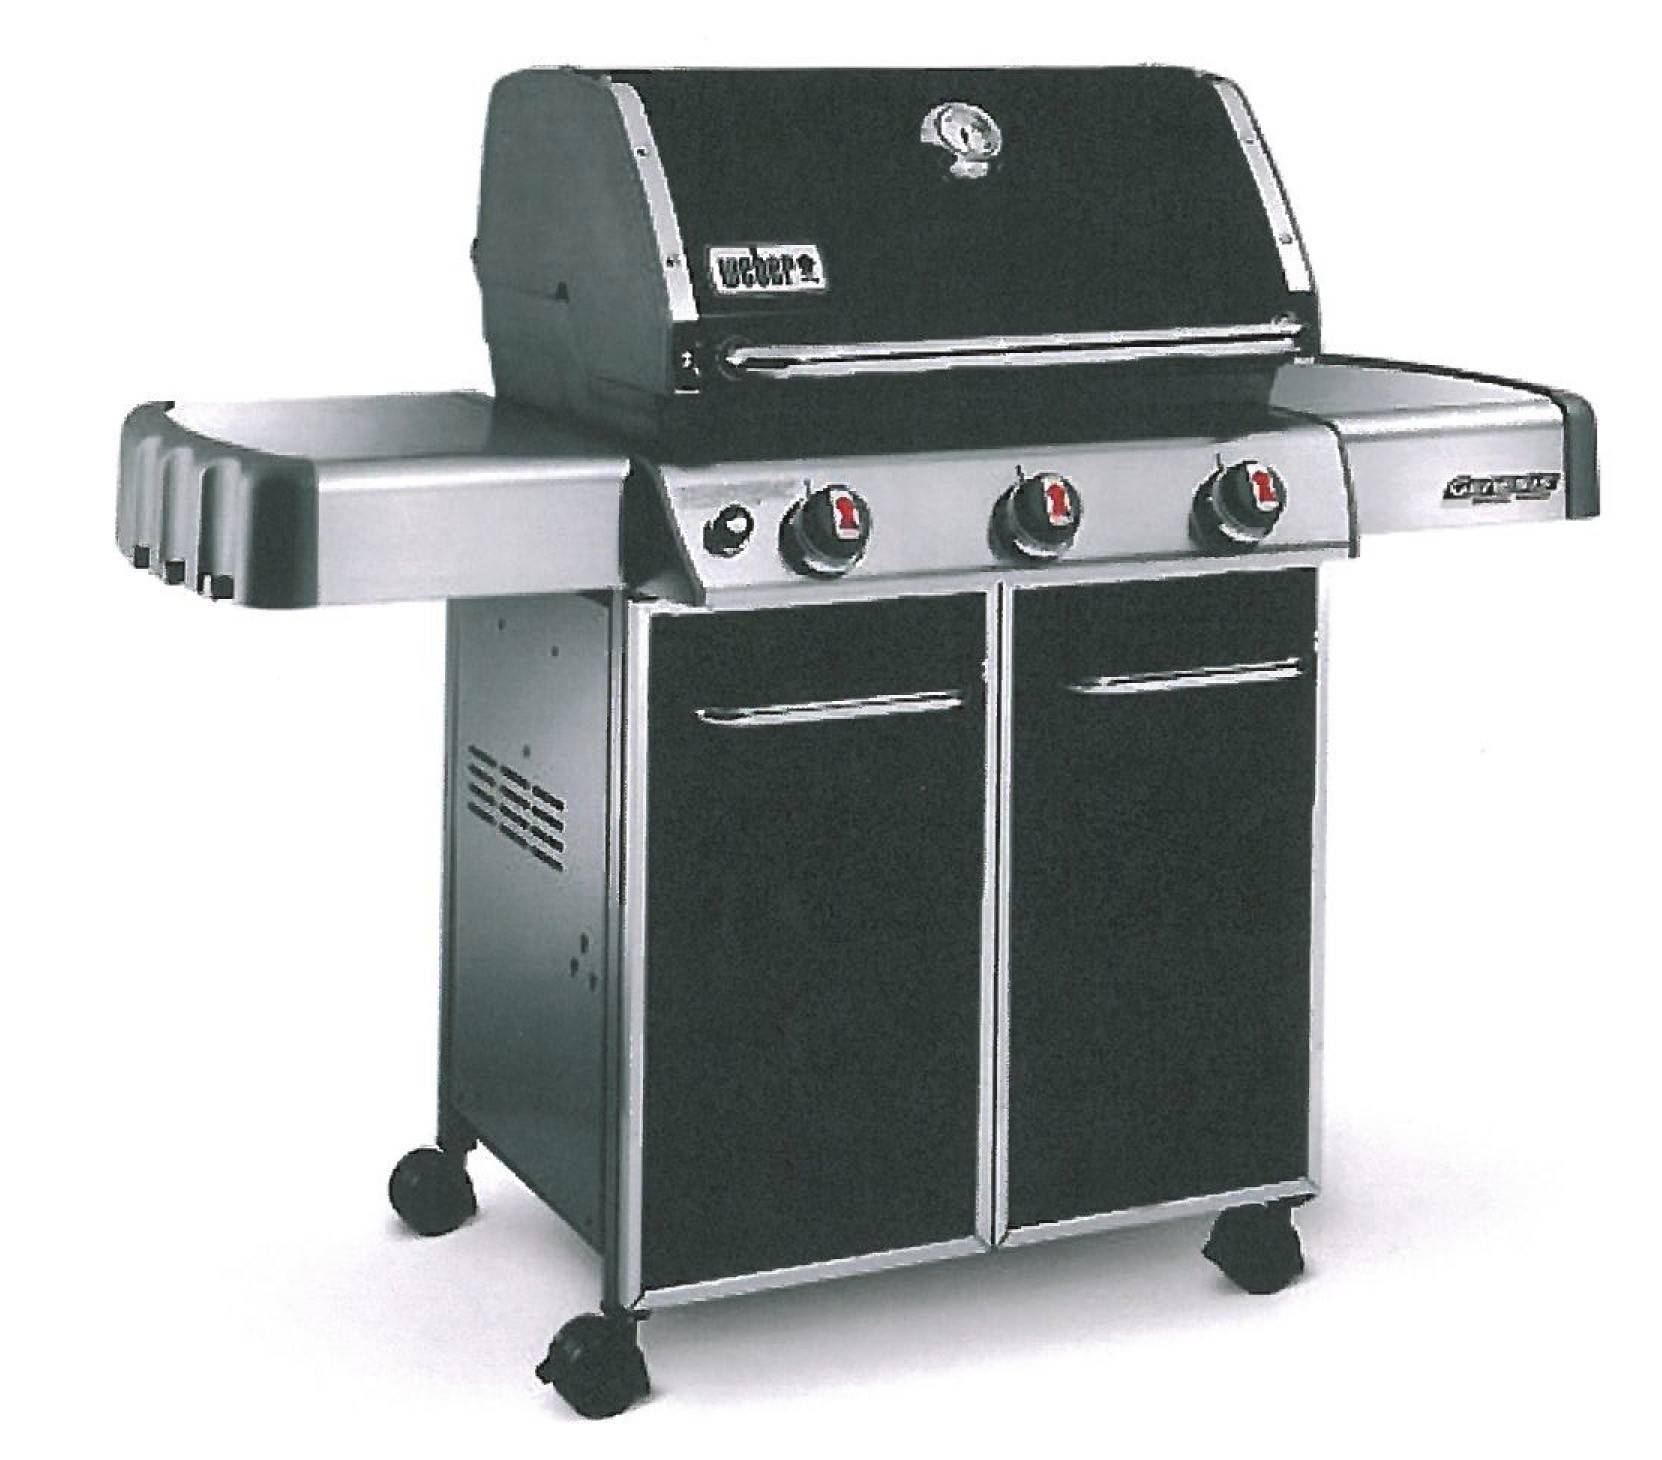 A Weber gas grill makes outdoor cooking easy.